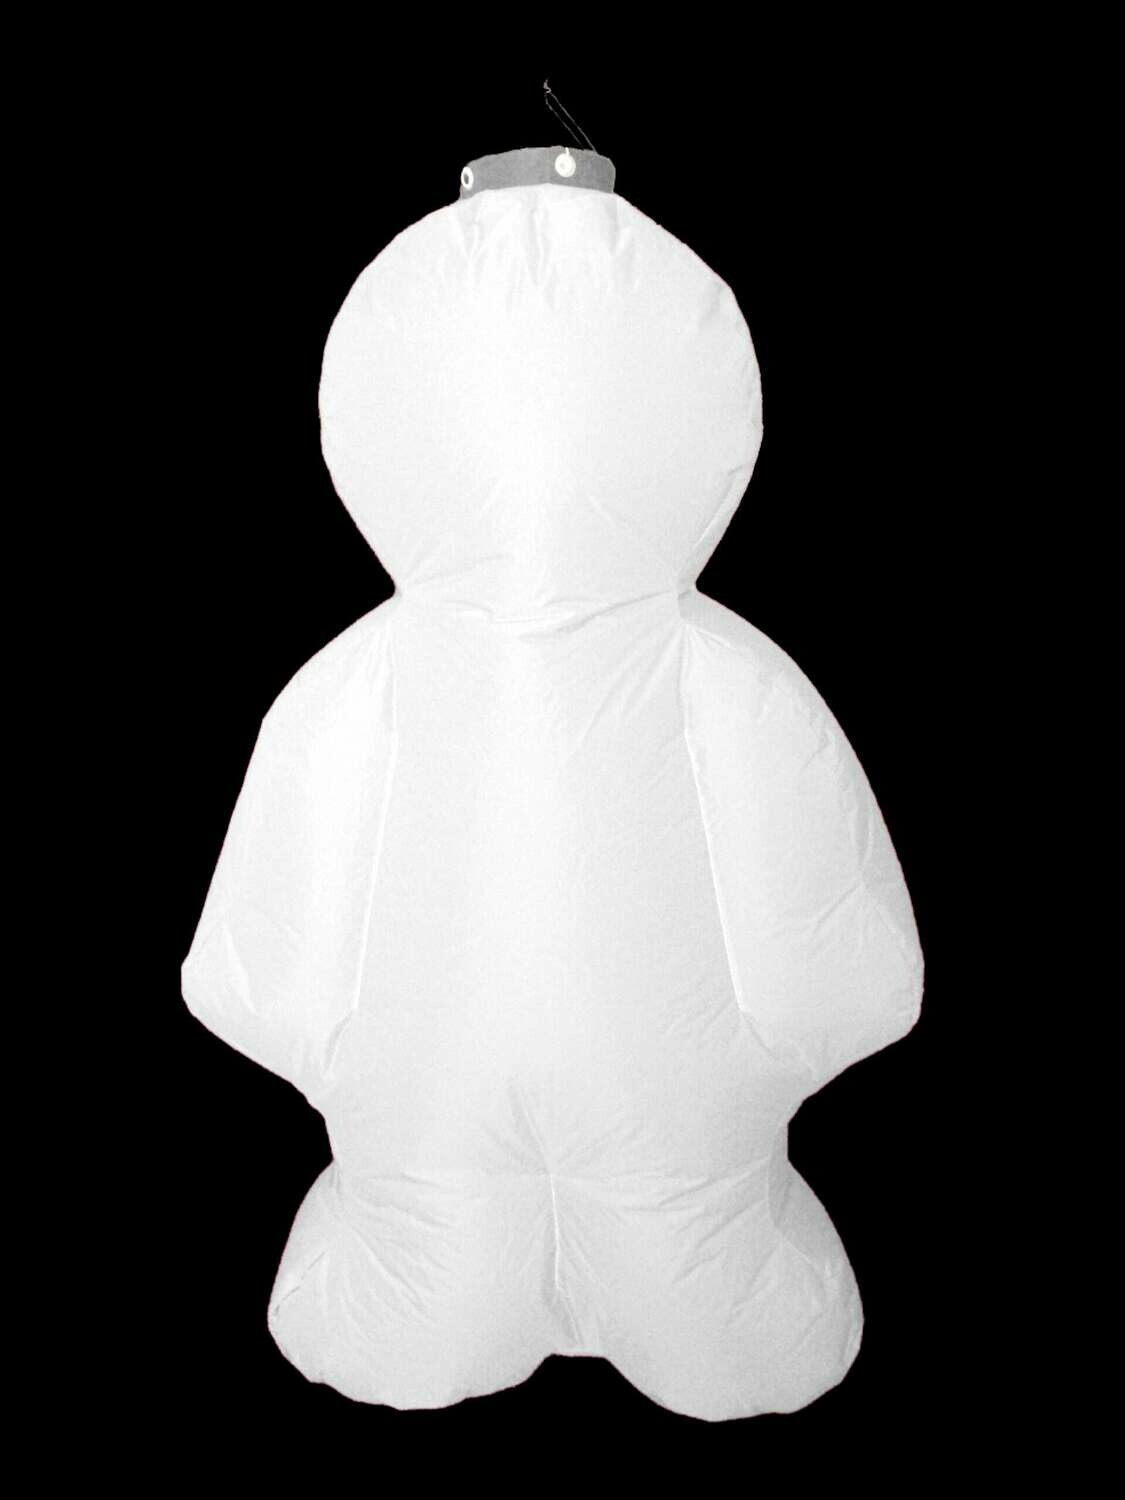 Hanging Inflatable Jelly Baby 3.6ft/110cm x 6ft/182cm